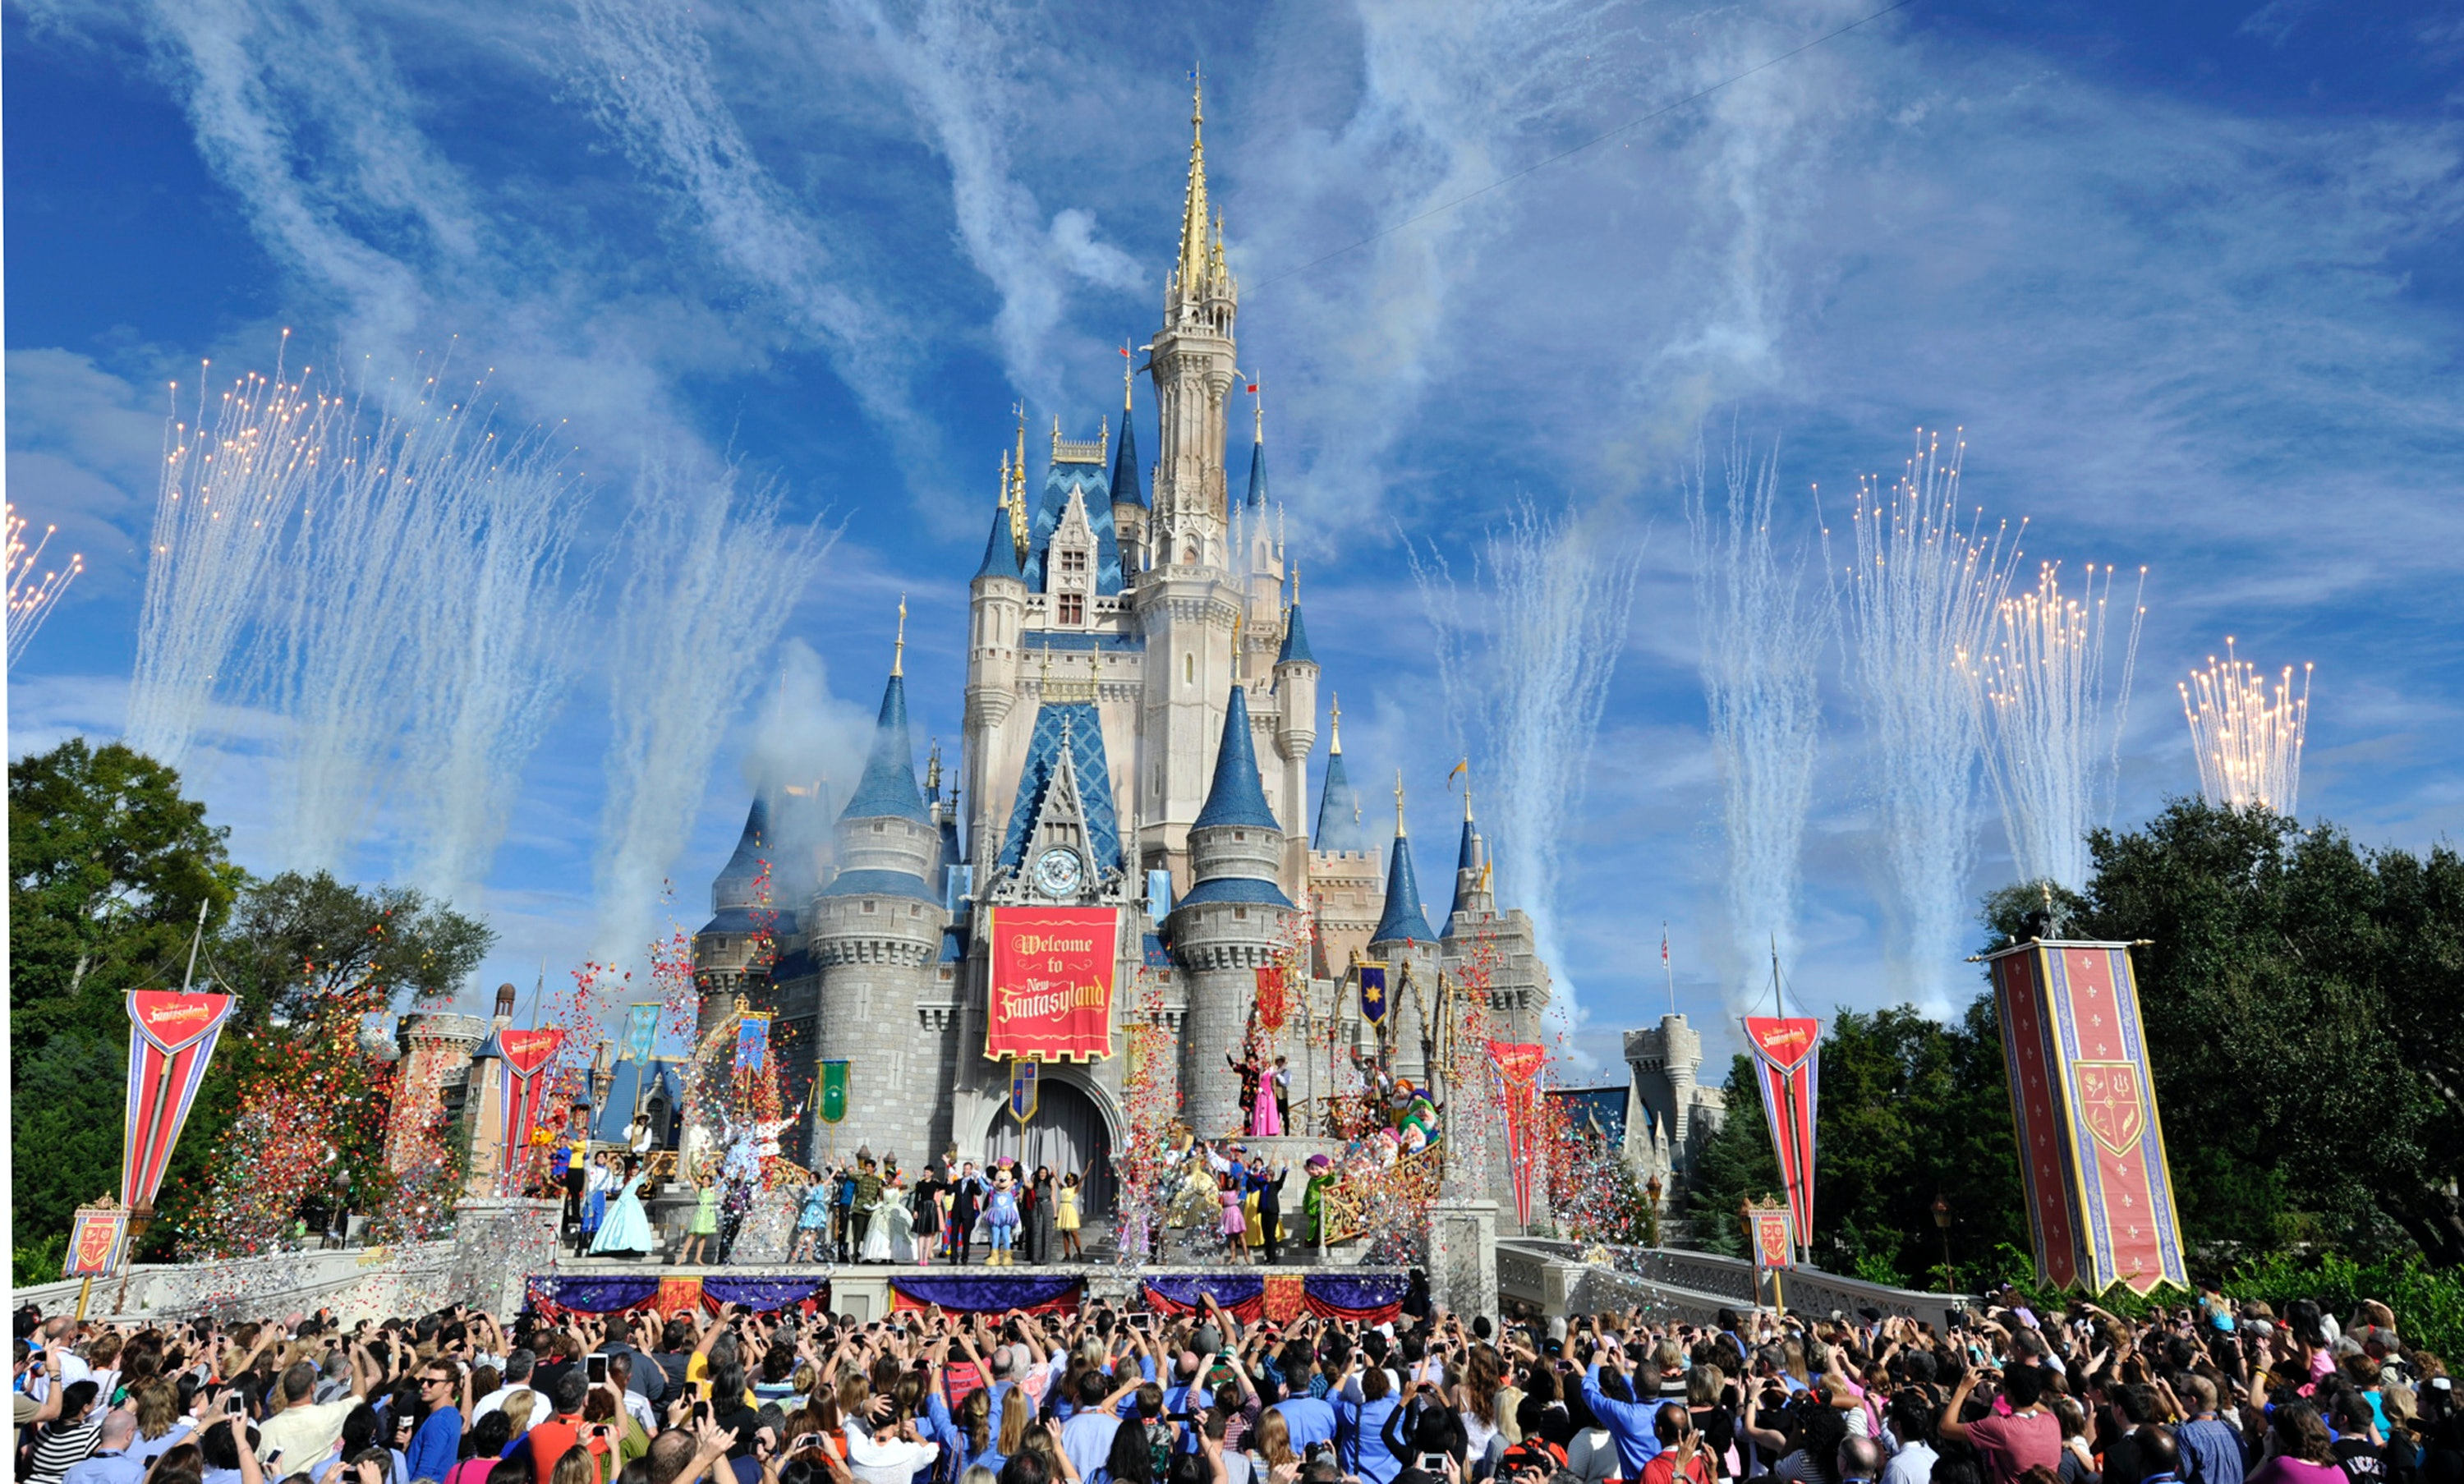 The Walt Disney Company (NYSE:DIS) missed earnings on 2 occasions